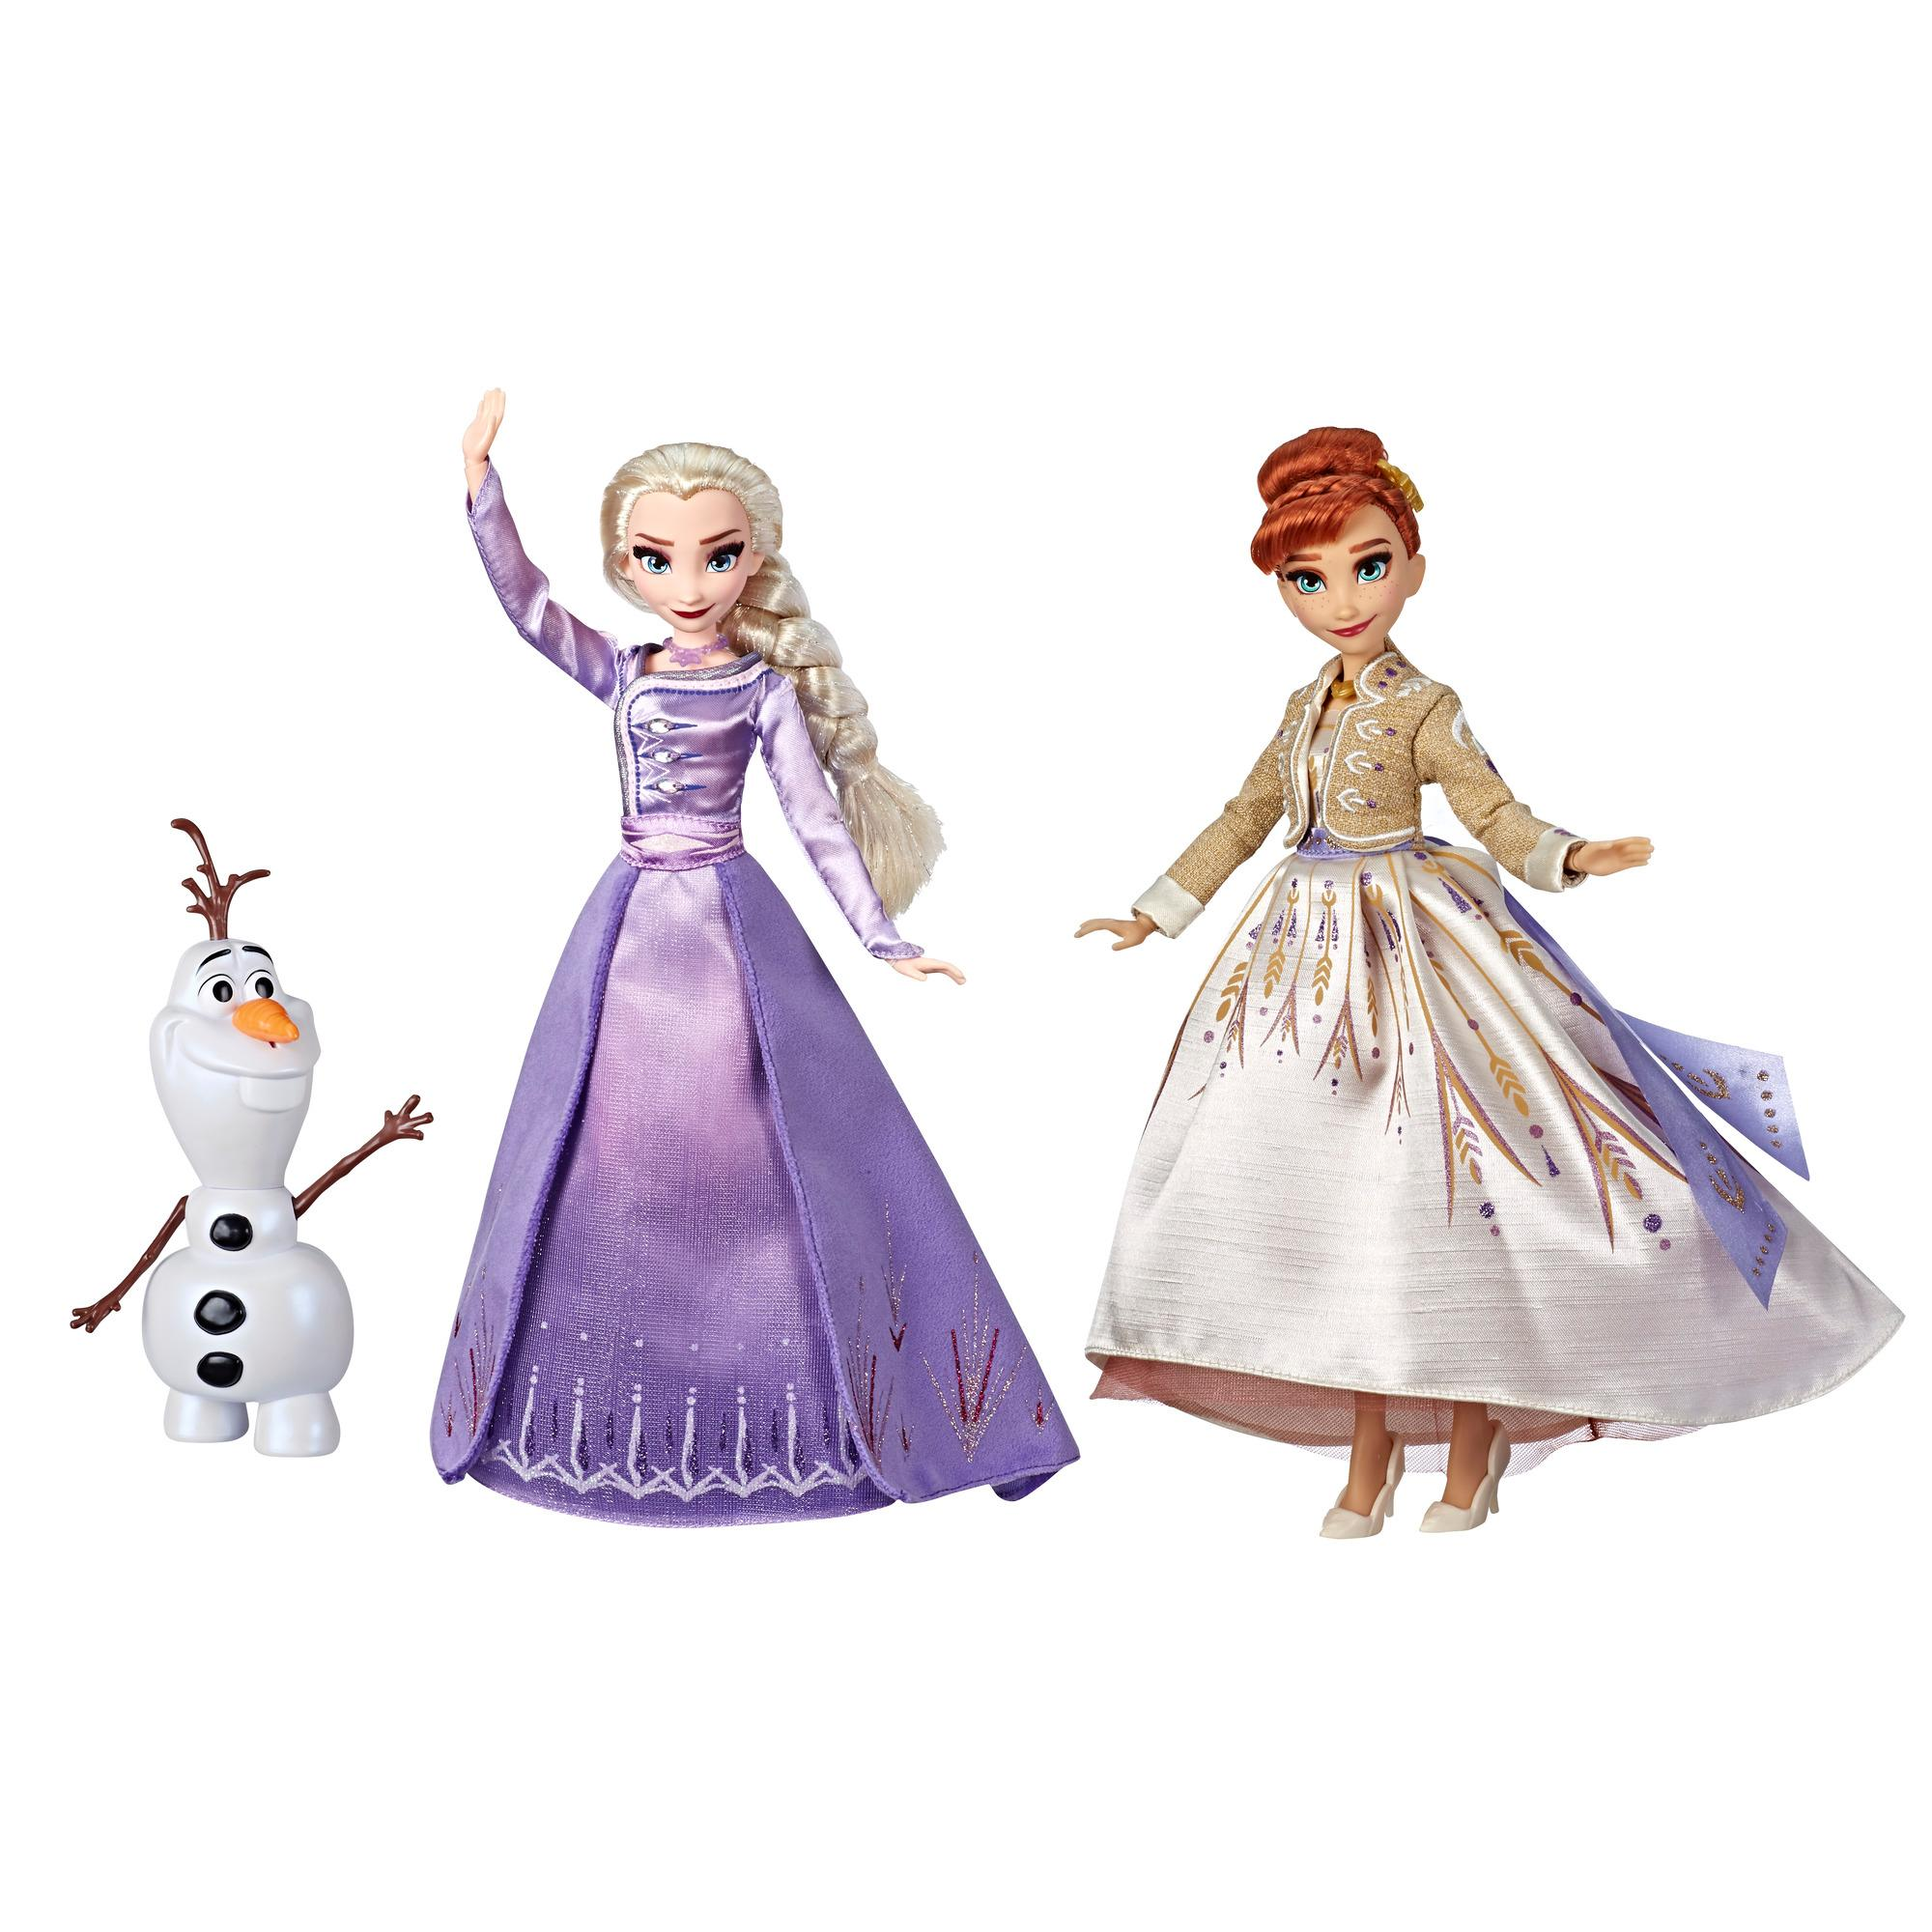 Disney Frozen Elsa, Anna, and Olaf Fashion Doll Set With Dresses and Shoes, Toy Inspired by Disney's Frozen 2